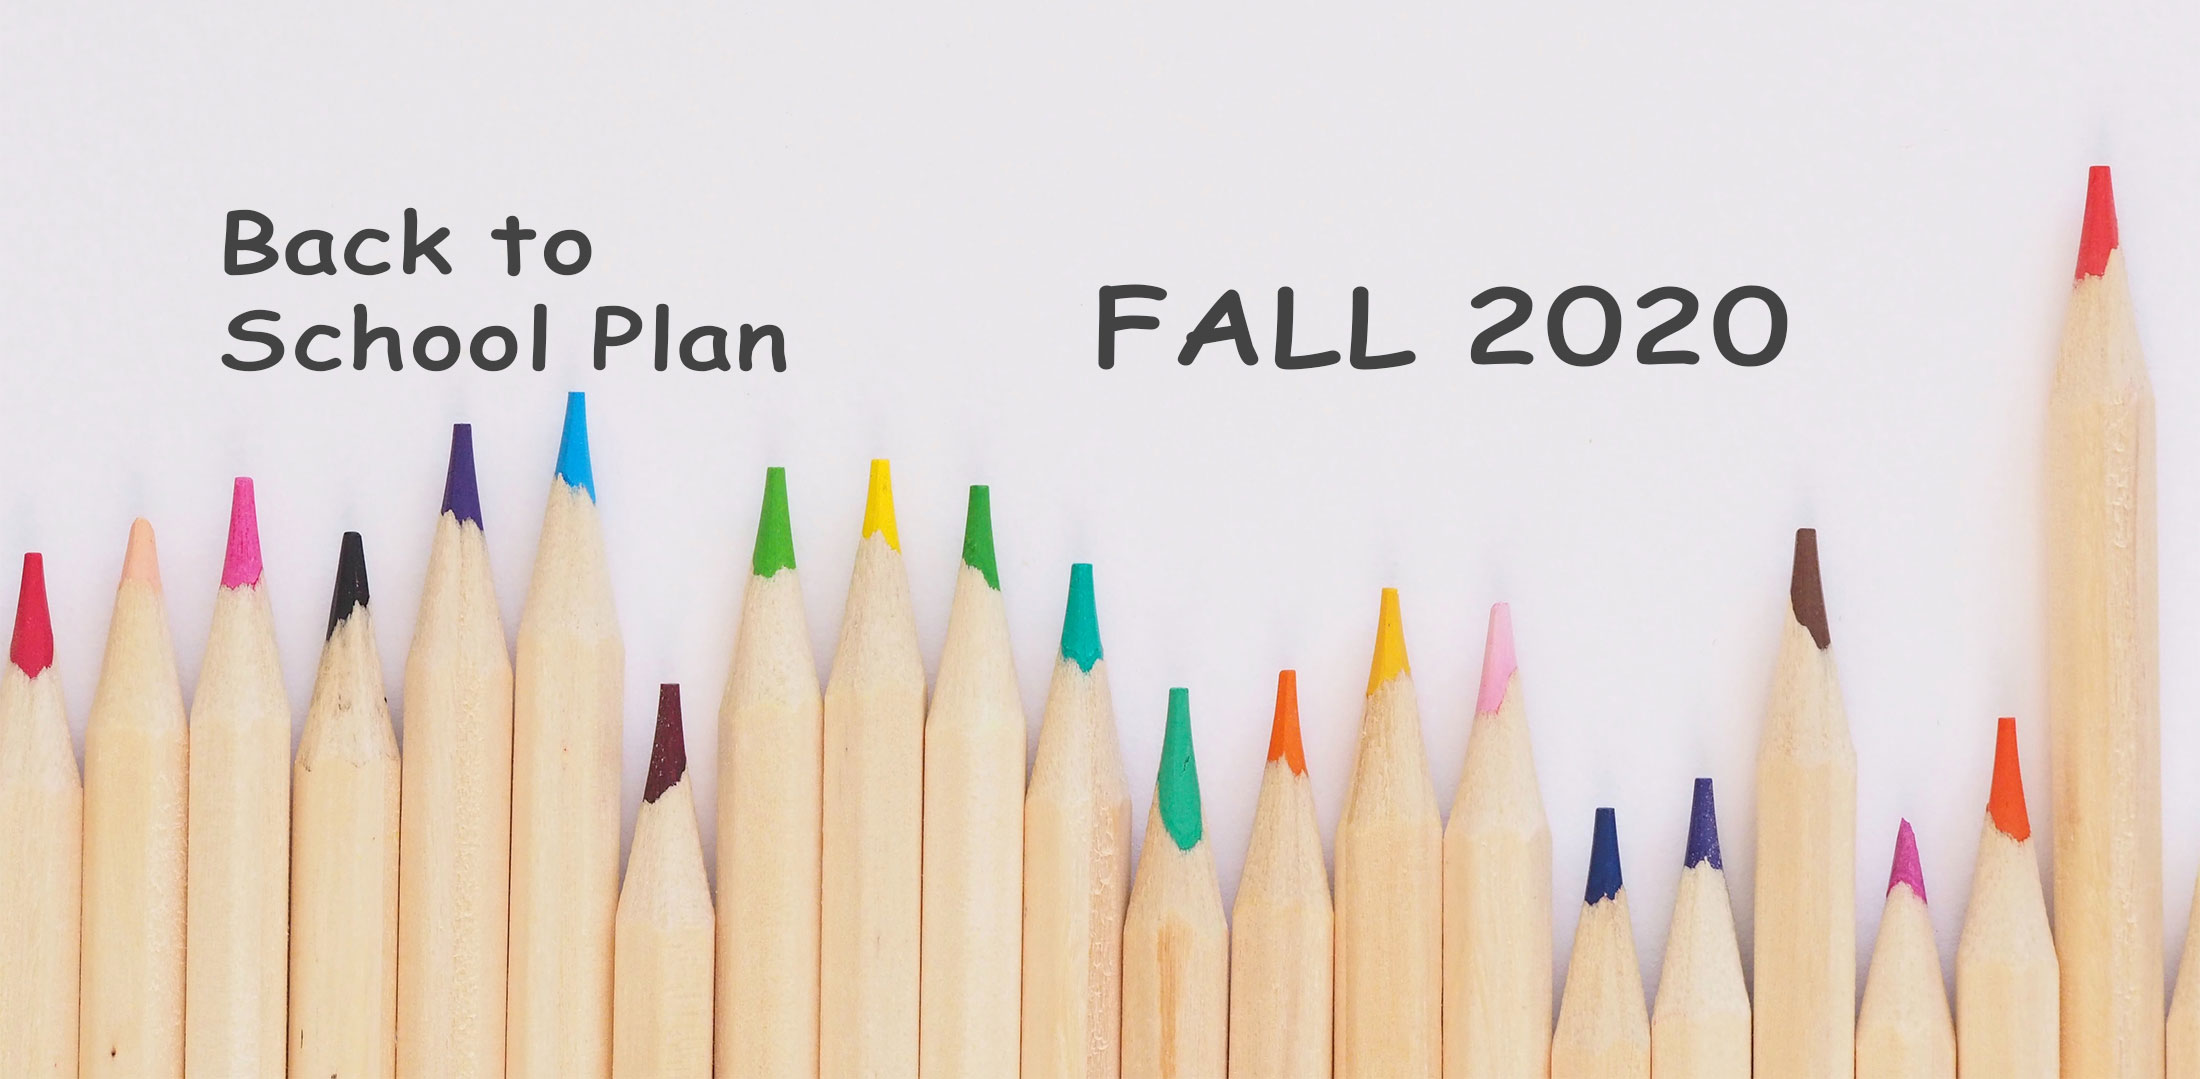 Back to School Plan - Fall 2020